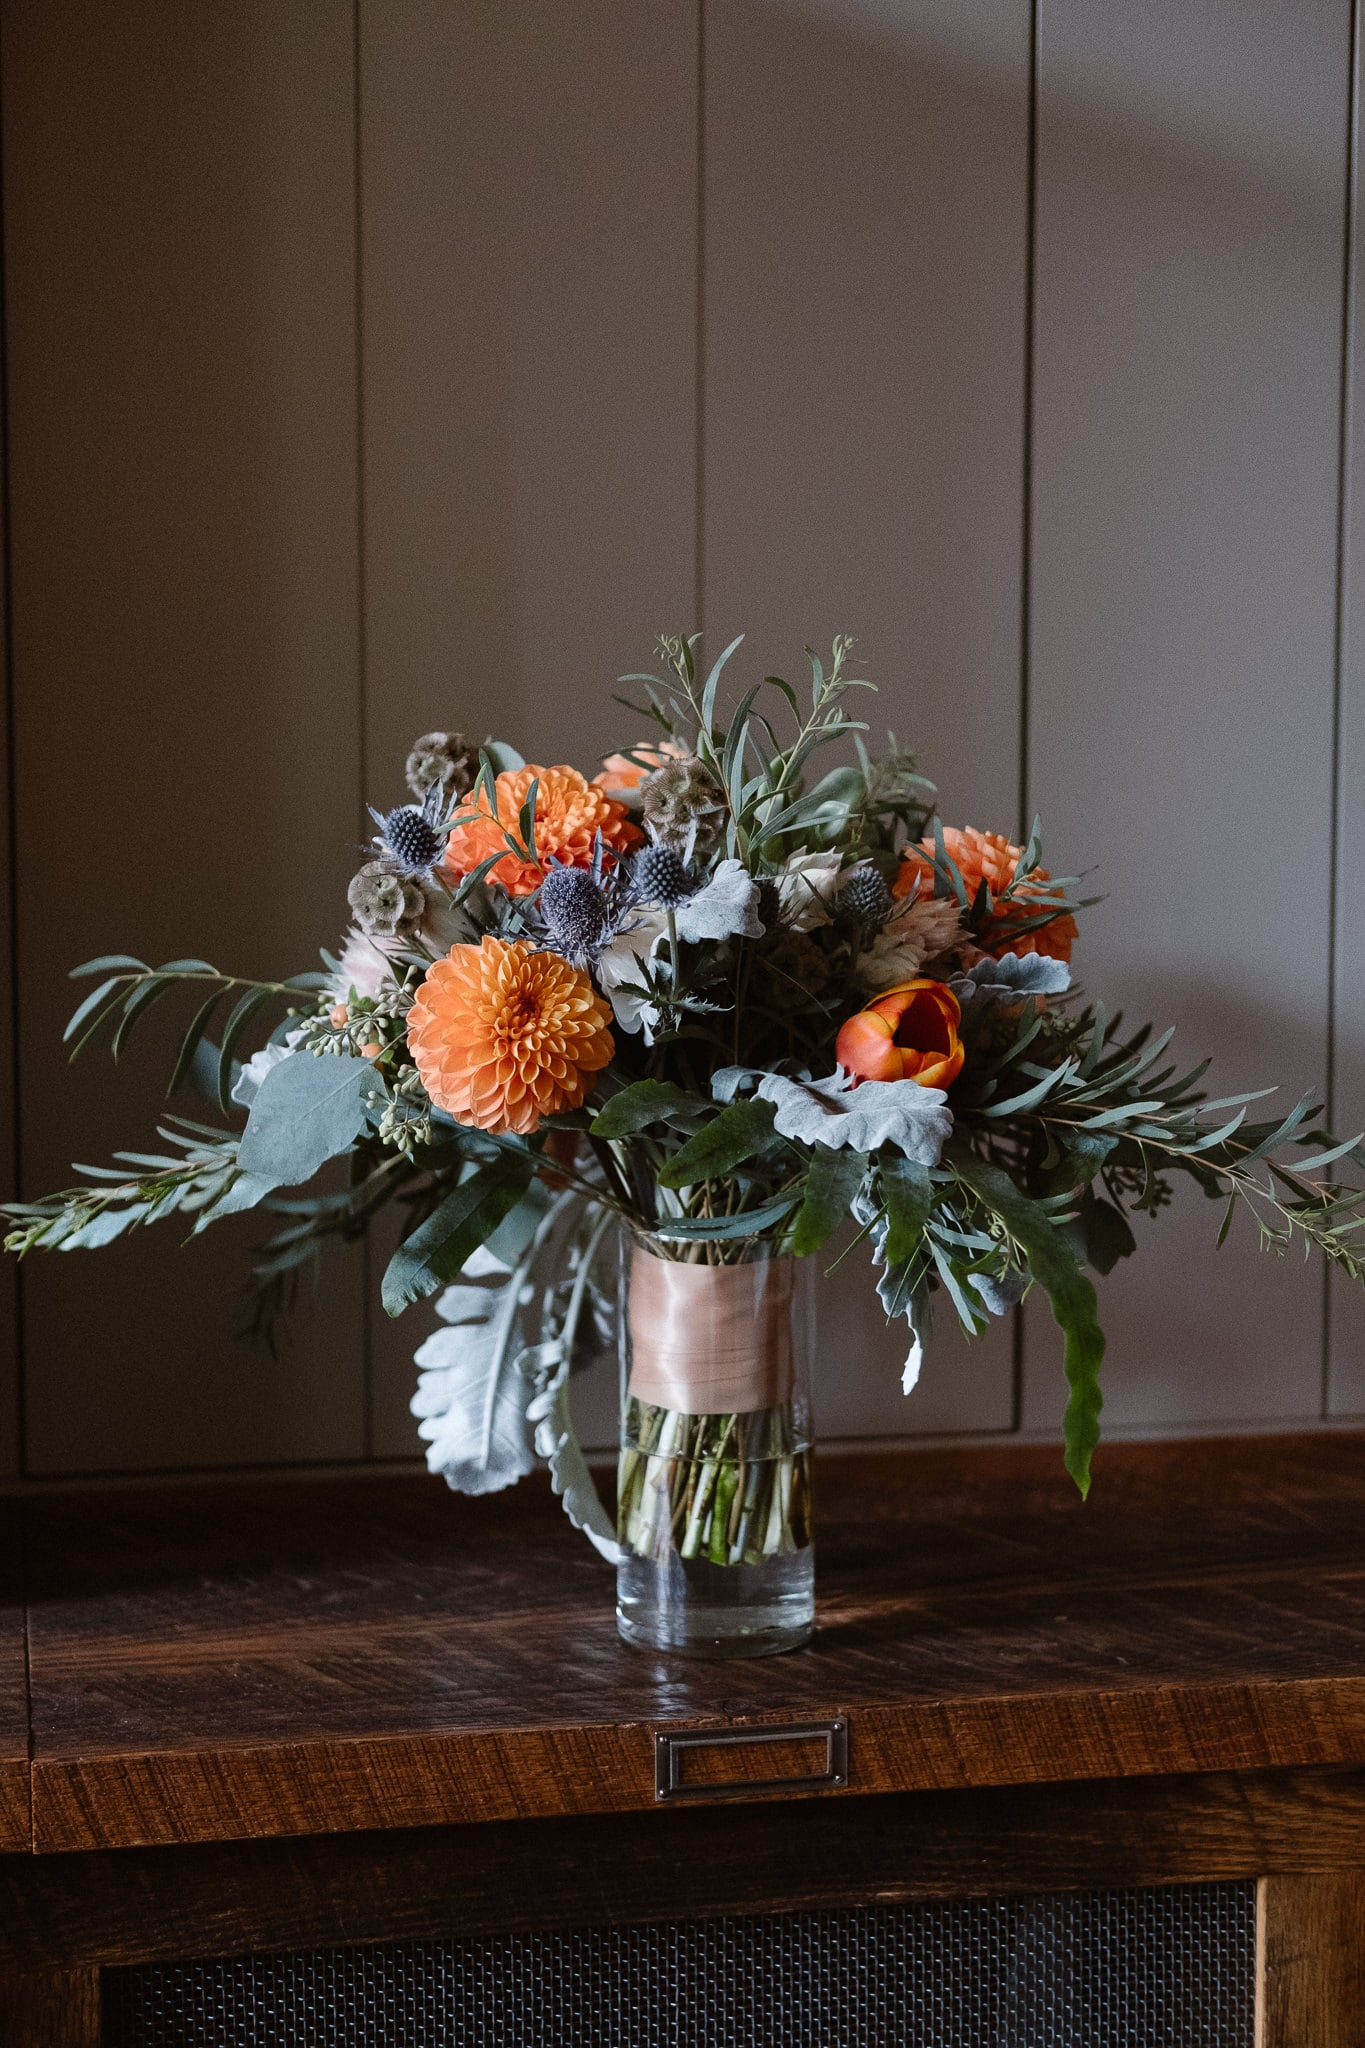 Crested Butte Wedding Photographer, Scarp Ridge Lodge intimate elopement, fall color bouquet by From the Ground Up Flowers